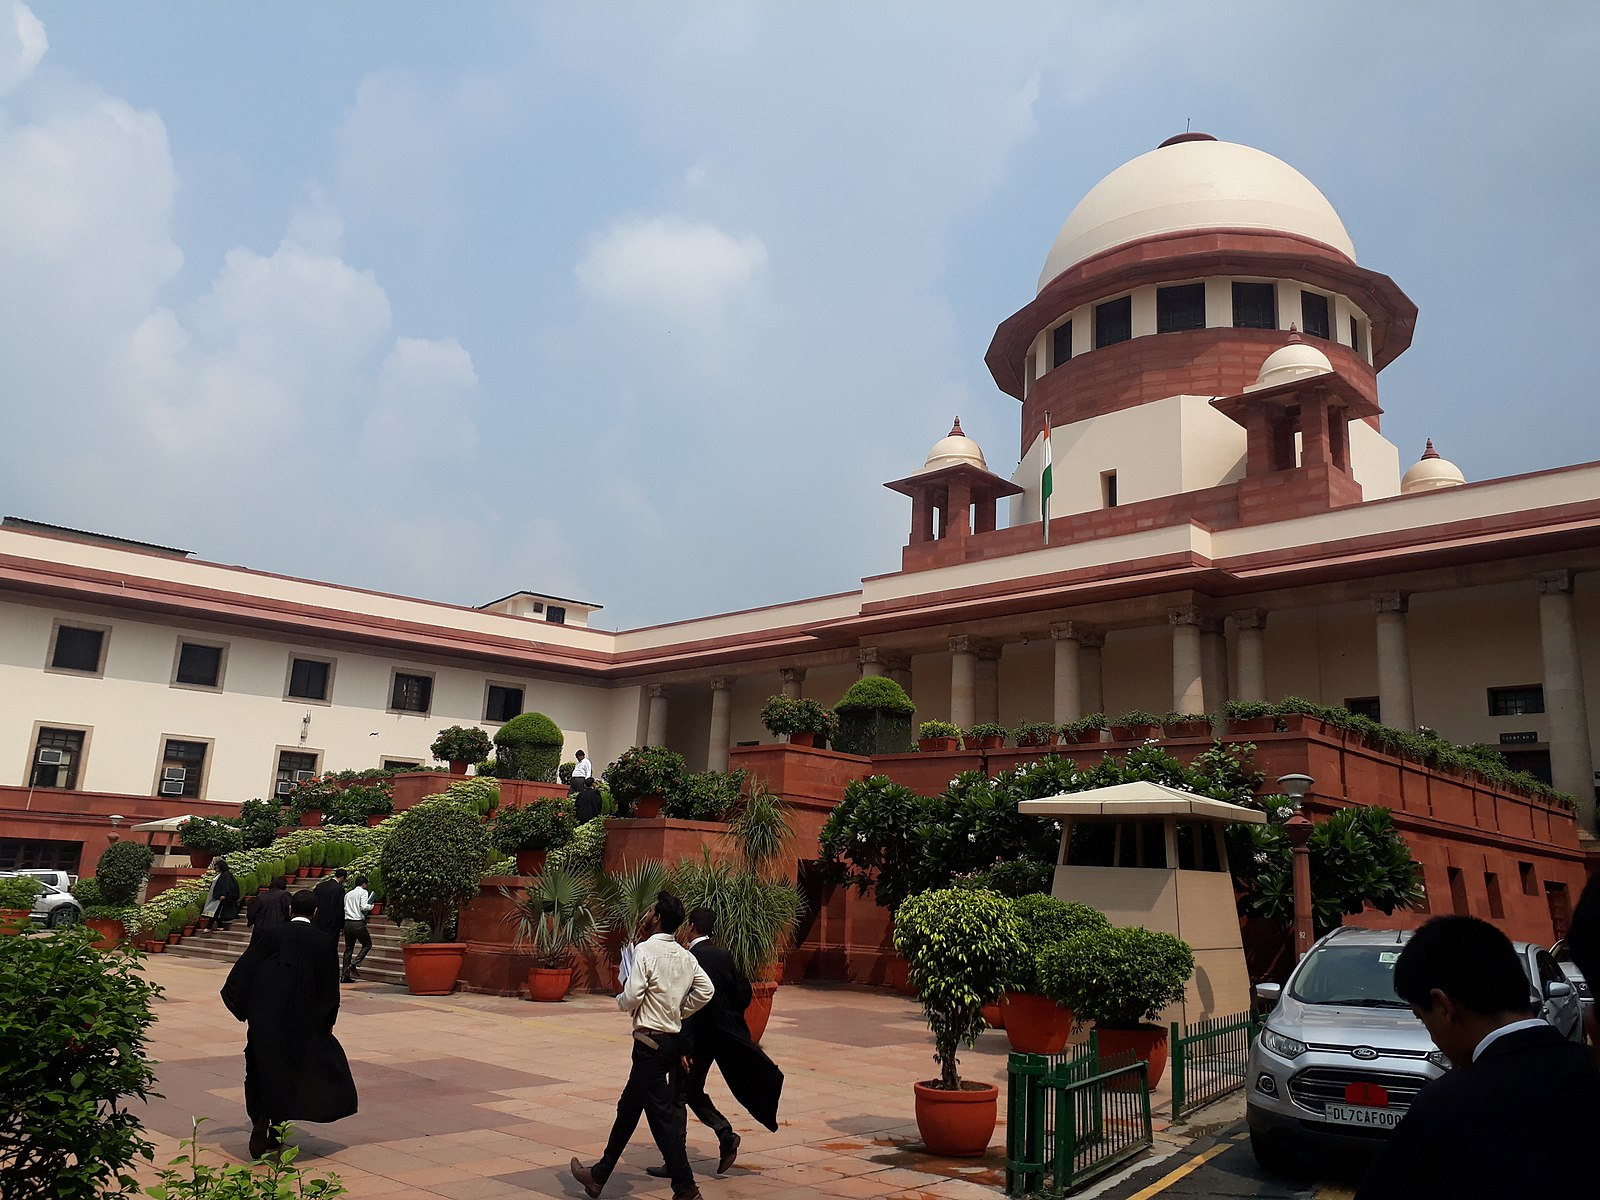 I.C. Golaknath and Ors. v. State of Punjab Case Analysis (Validity of 1st and 7th Constitutional Amendments and Scope of Article 13)